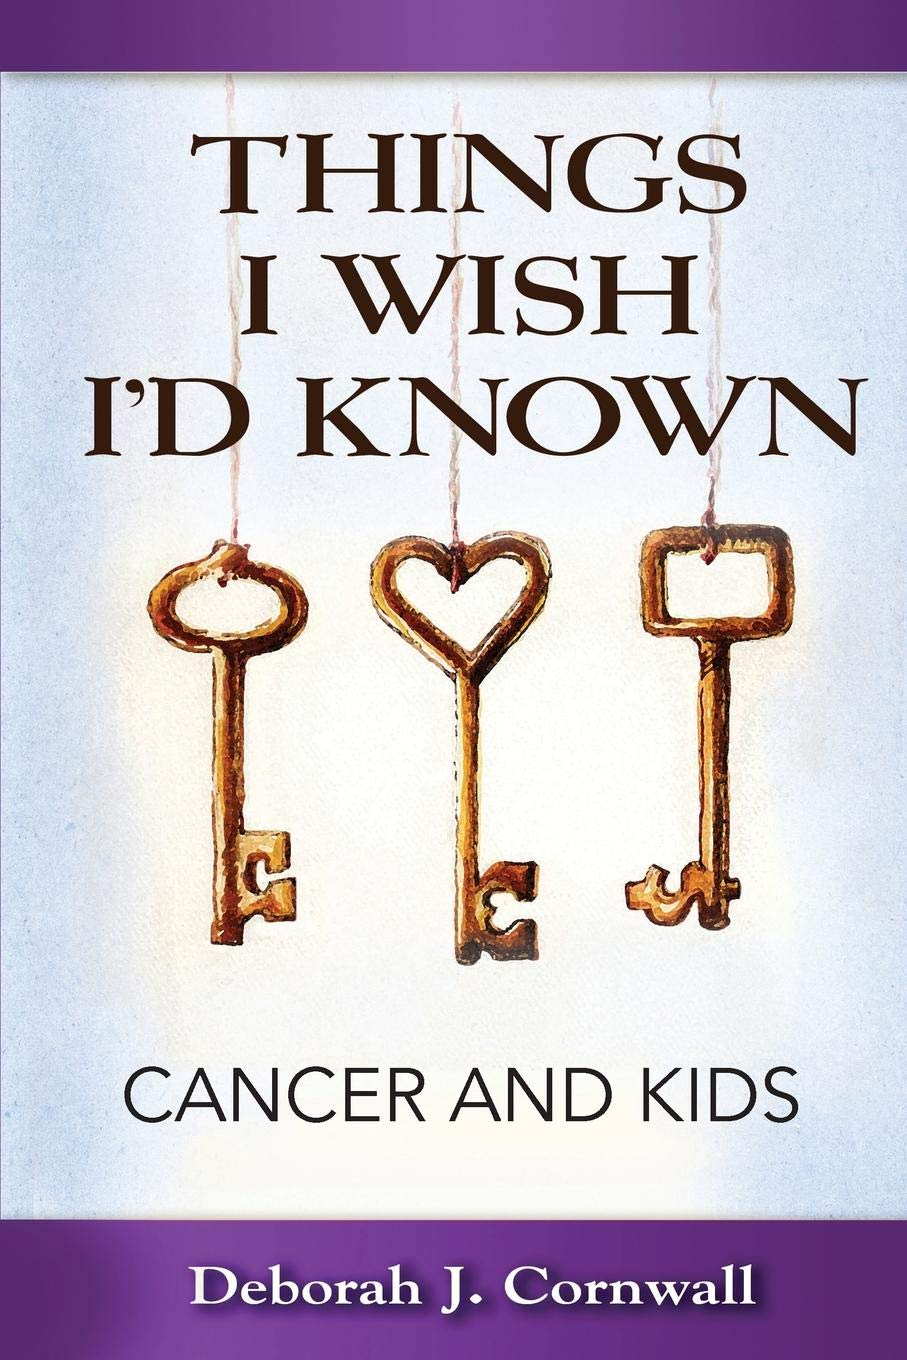 Things I Wish I'd Known: Cancer and Kids PDF